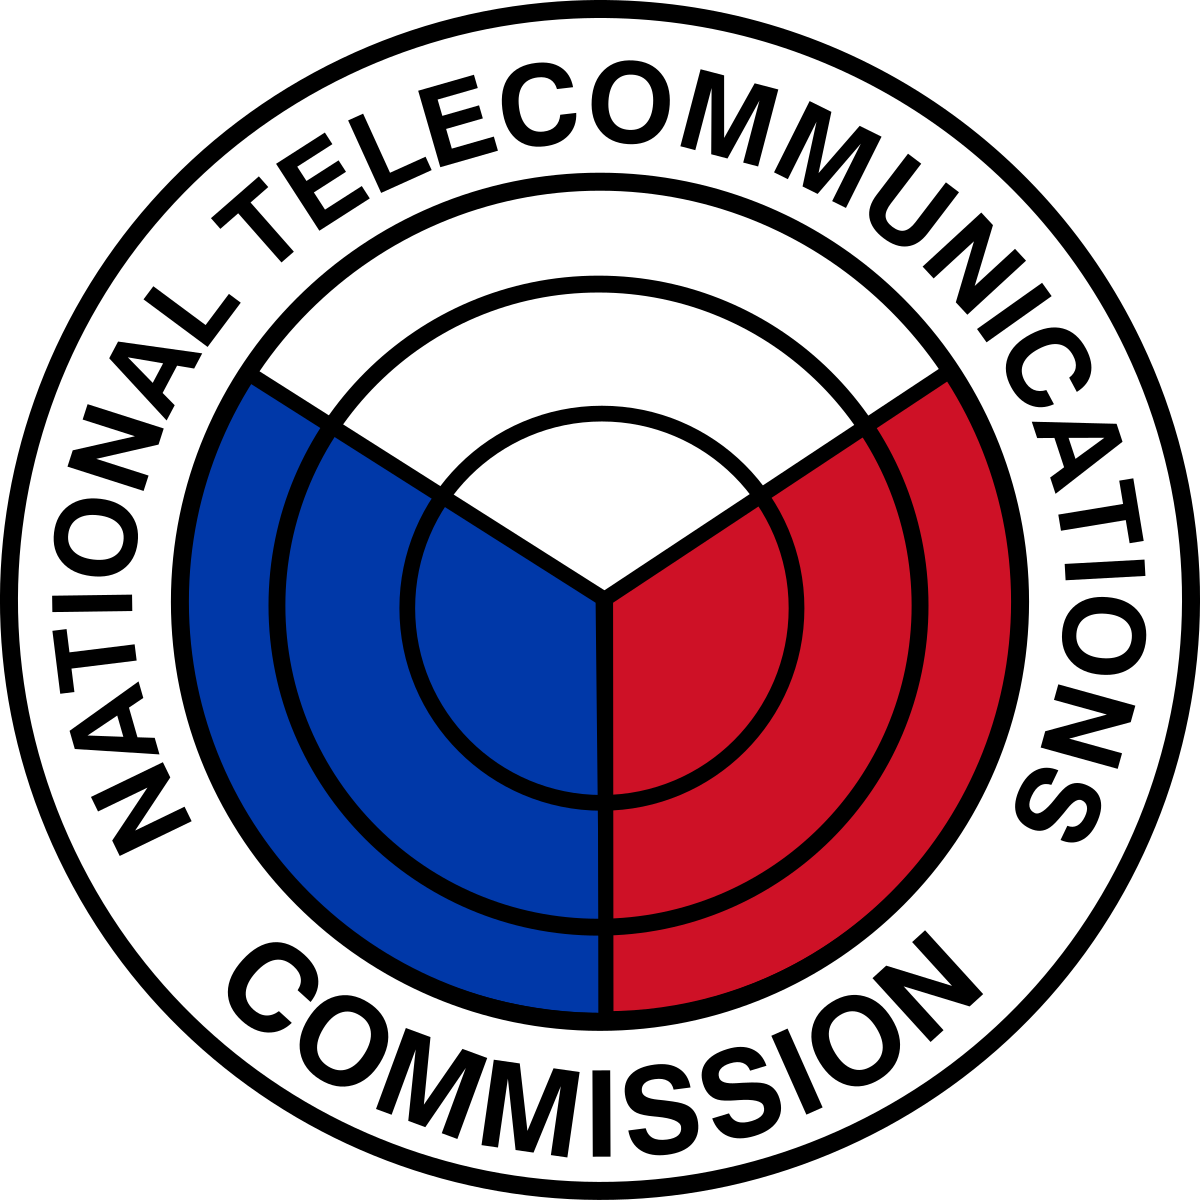 Forms and Guides from National Telecommunications Commission.